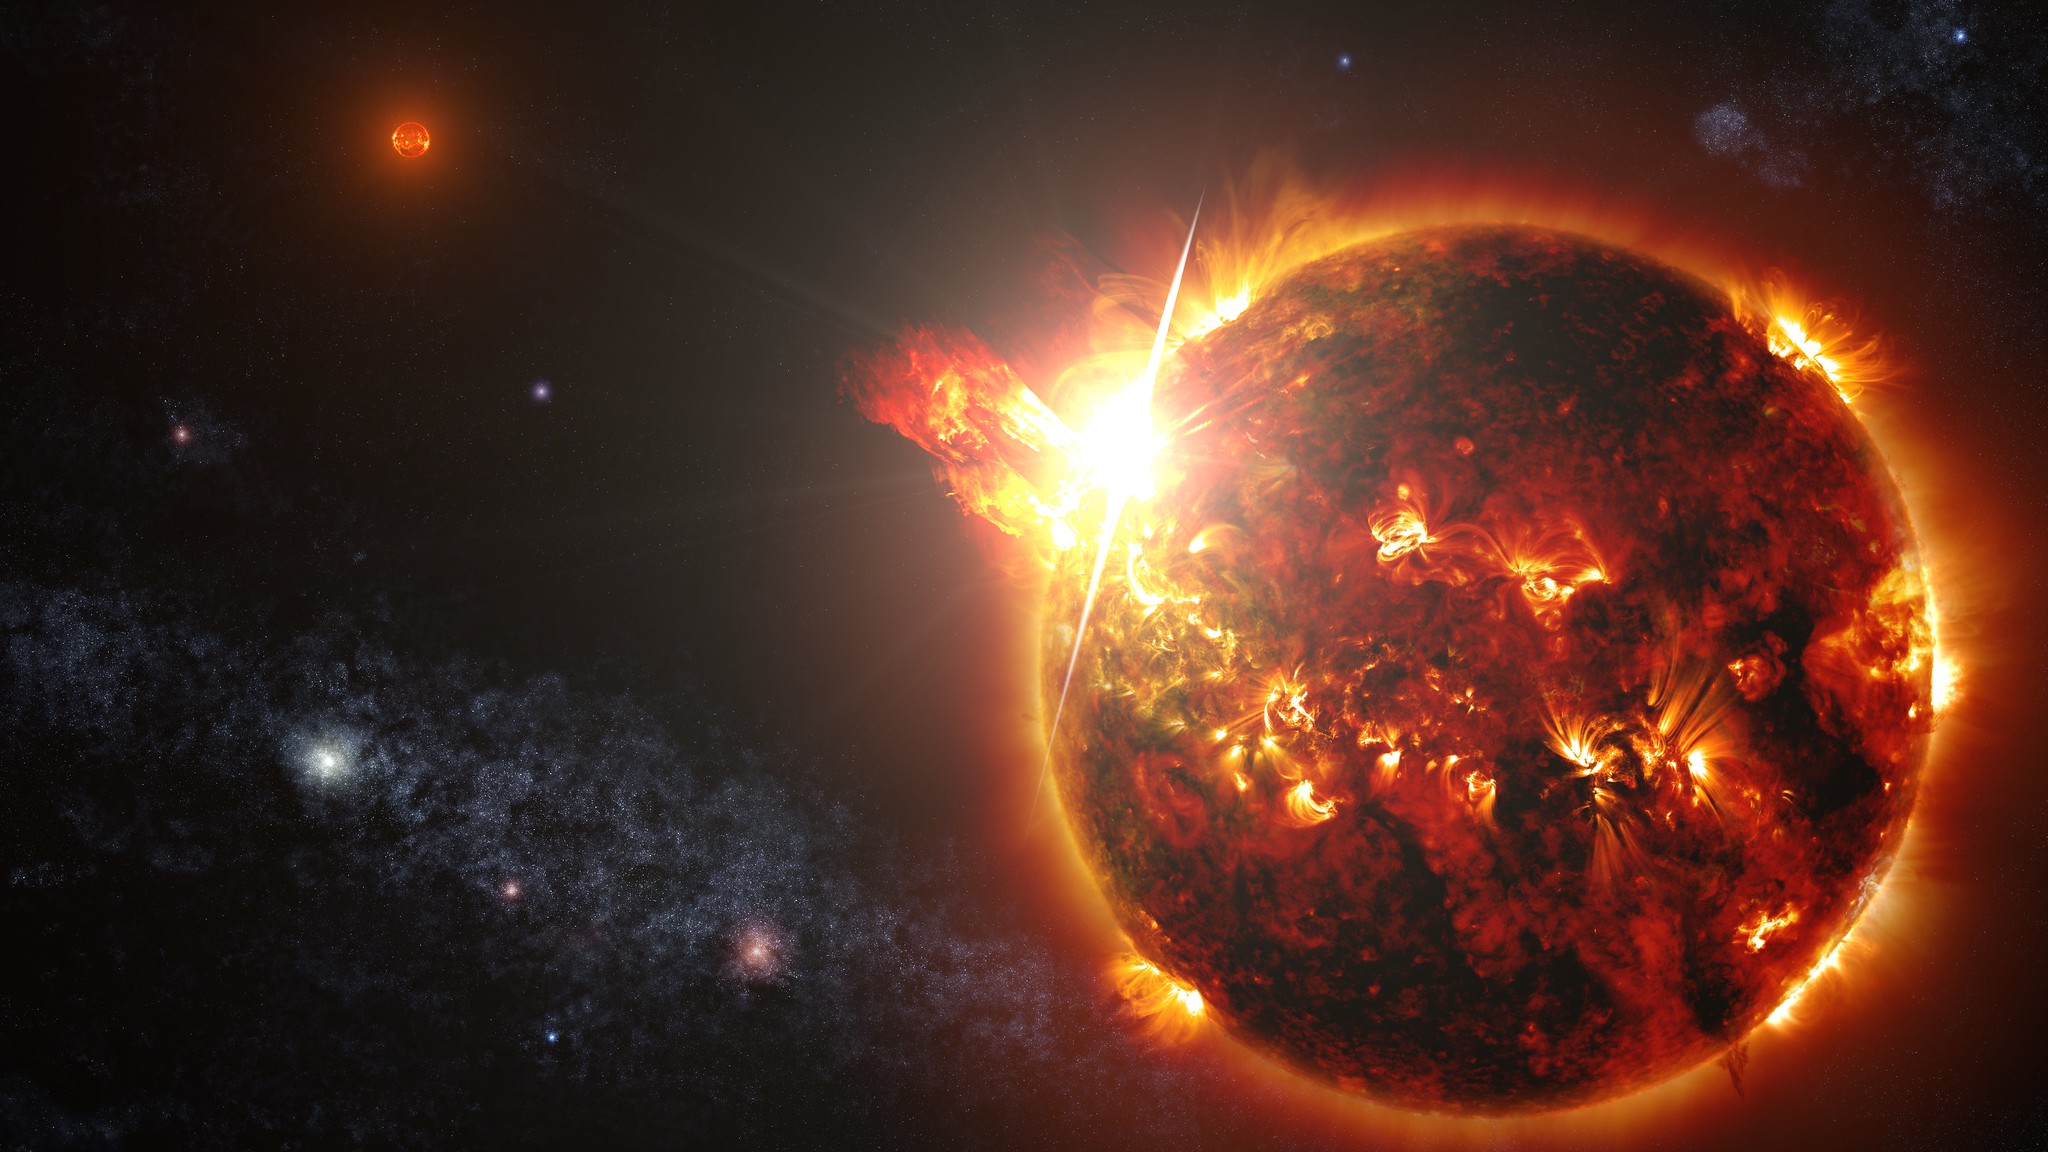 Flaring red dwarf binary star system